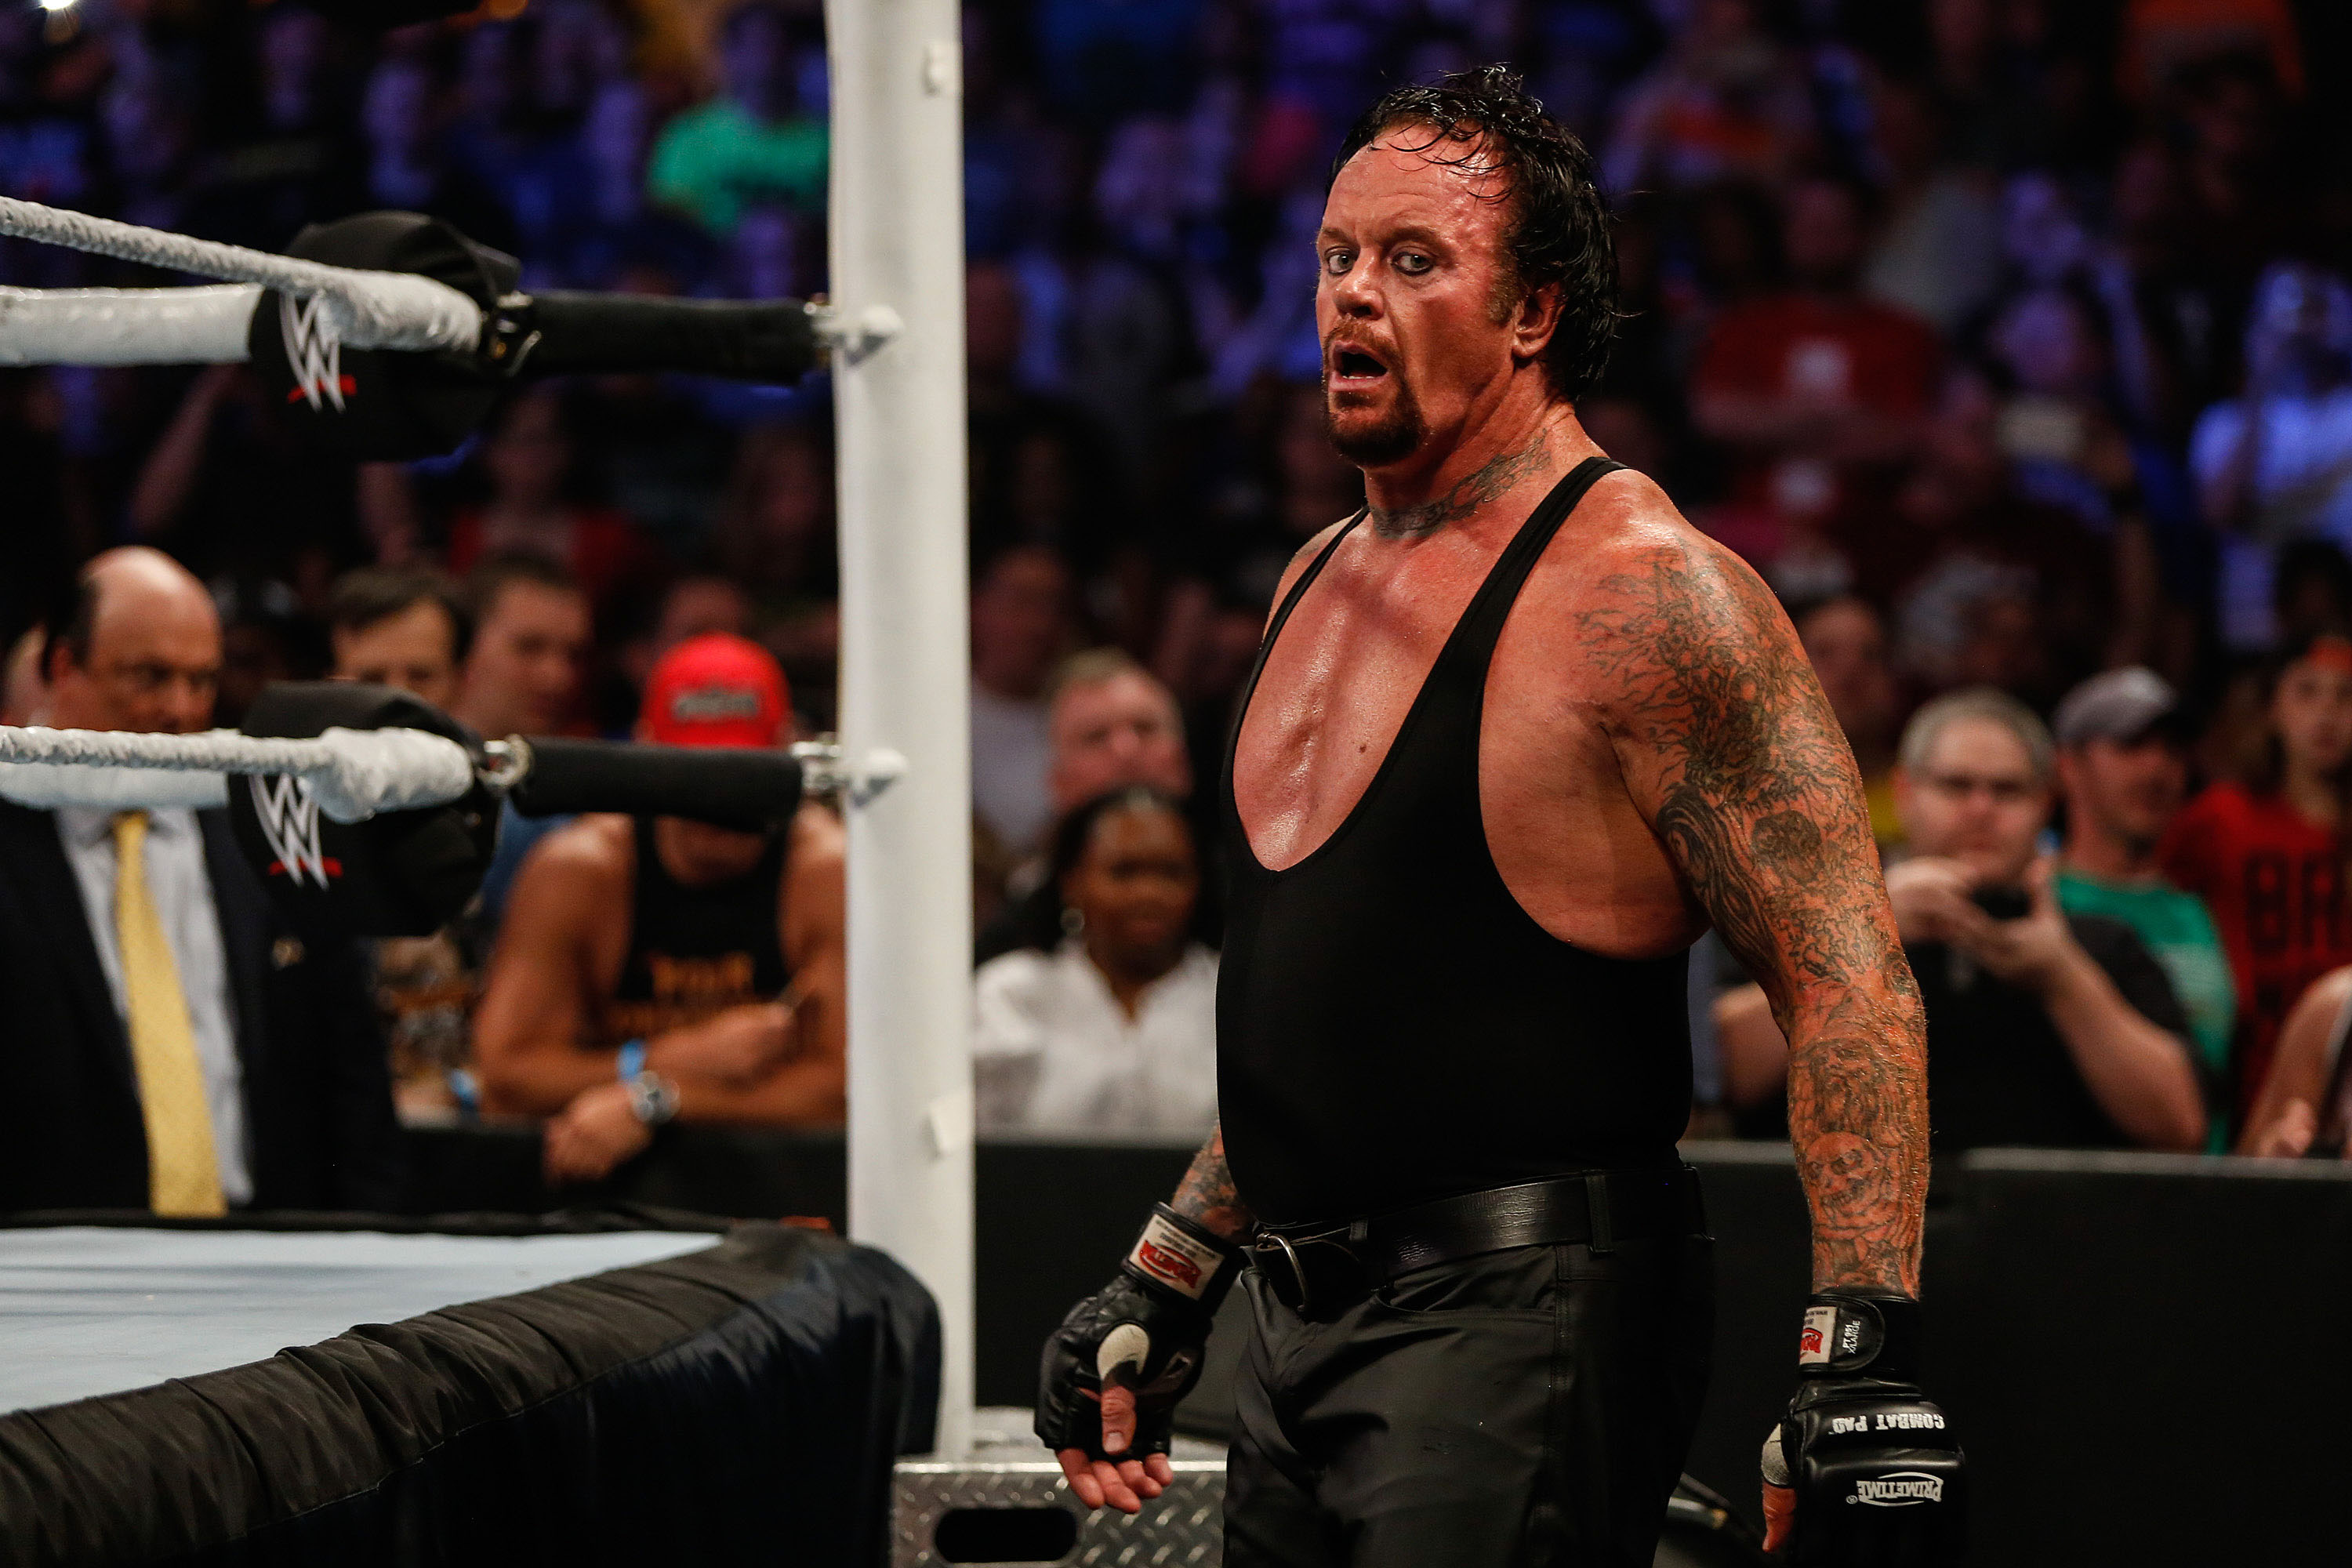 The Undertaker recovers during his fight against Brock Lesner at the WWE SummerSlam 2015 at Barclays Center of Brooklyn in New York City. (Photo by JP Yim/Getty Images)